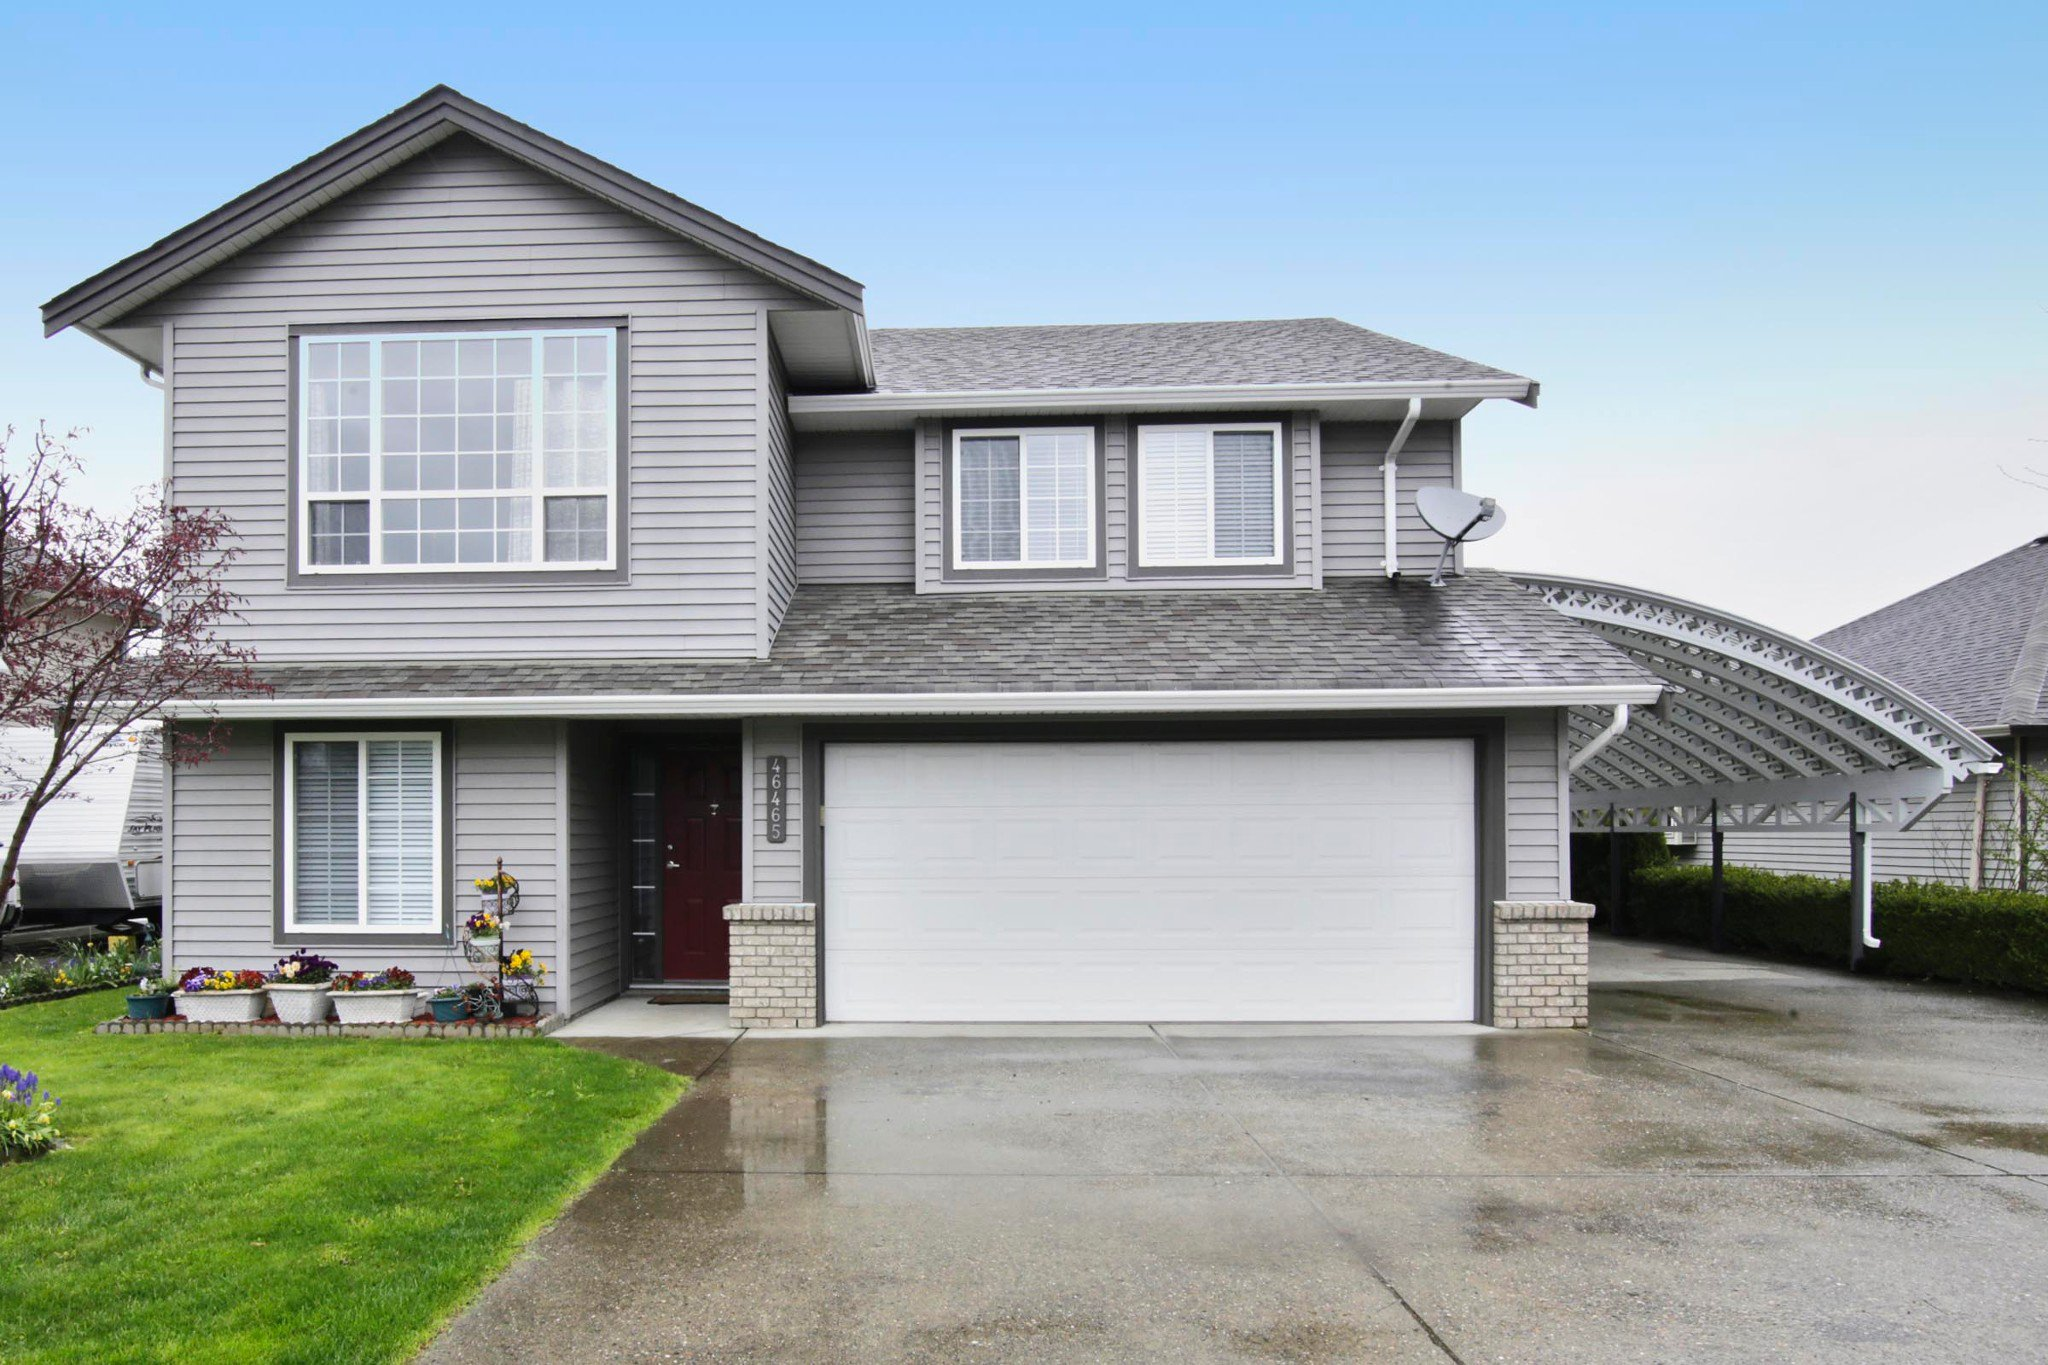 Main Photo: 46465 Ranchero Drive in Chilliwack: Sardis East Vedder Rd House for sale : MLS®# R2257143